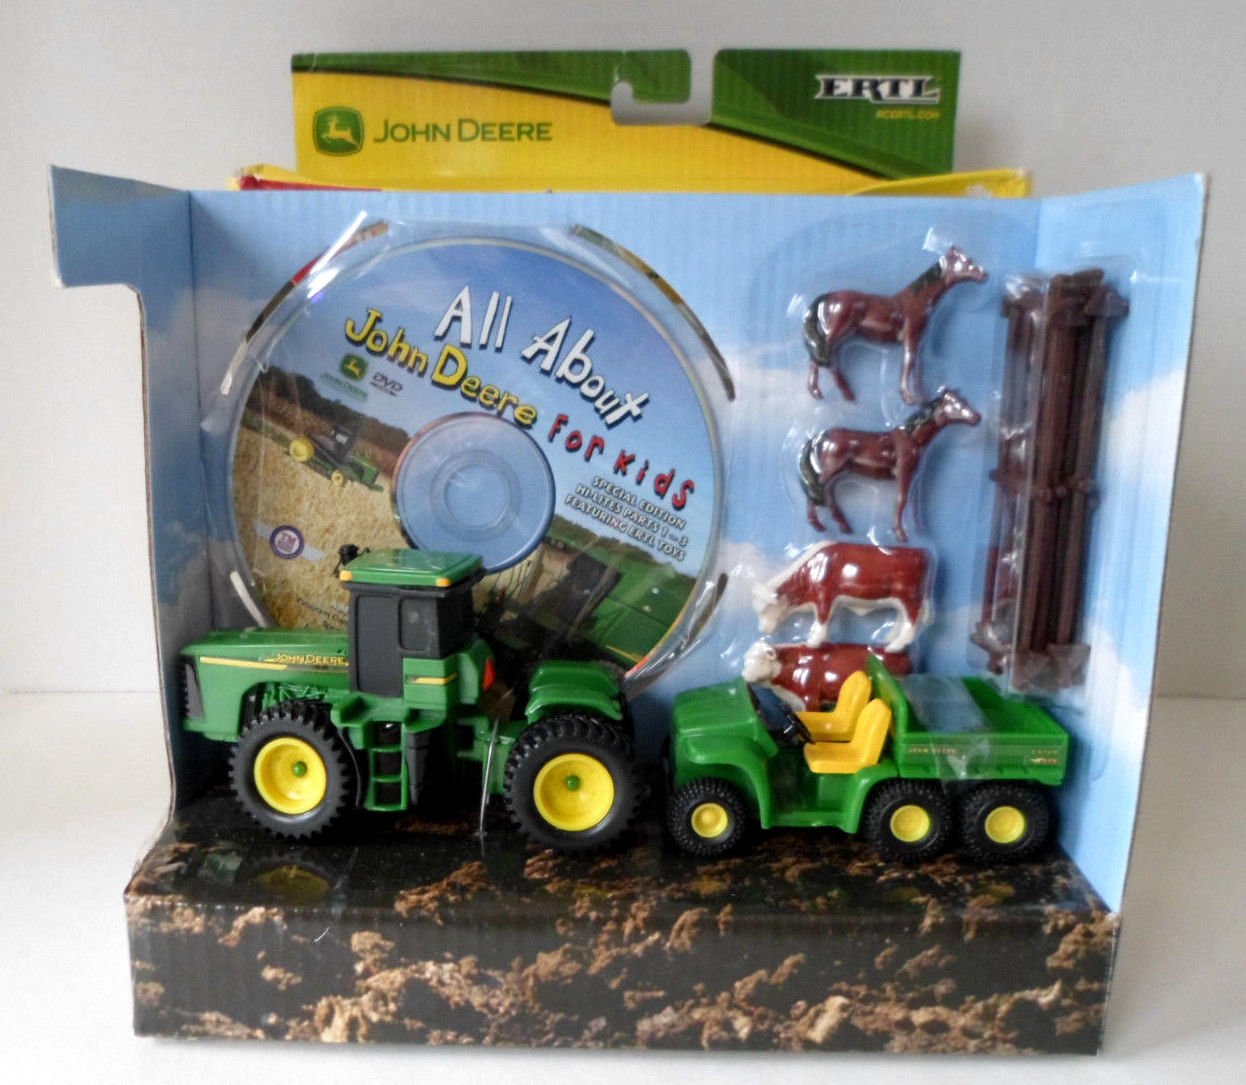 ERTL Deluxe Farm Animal Play Set All About John Deere For